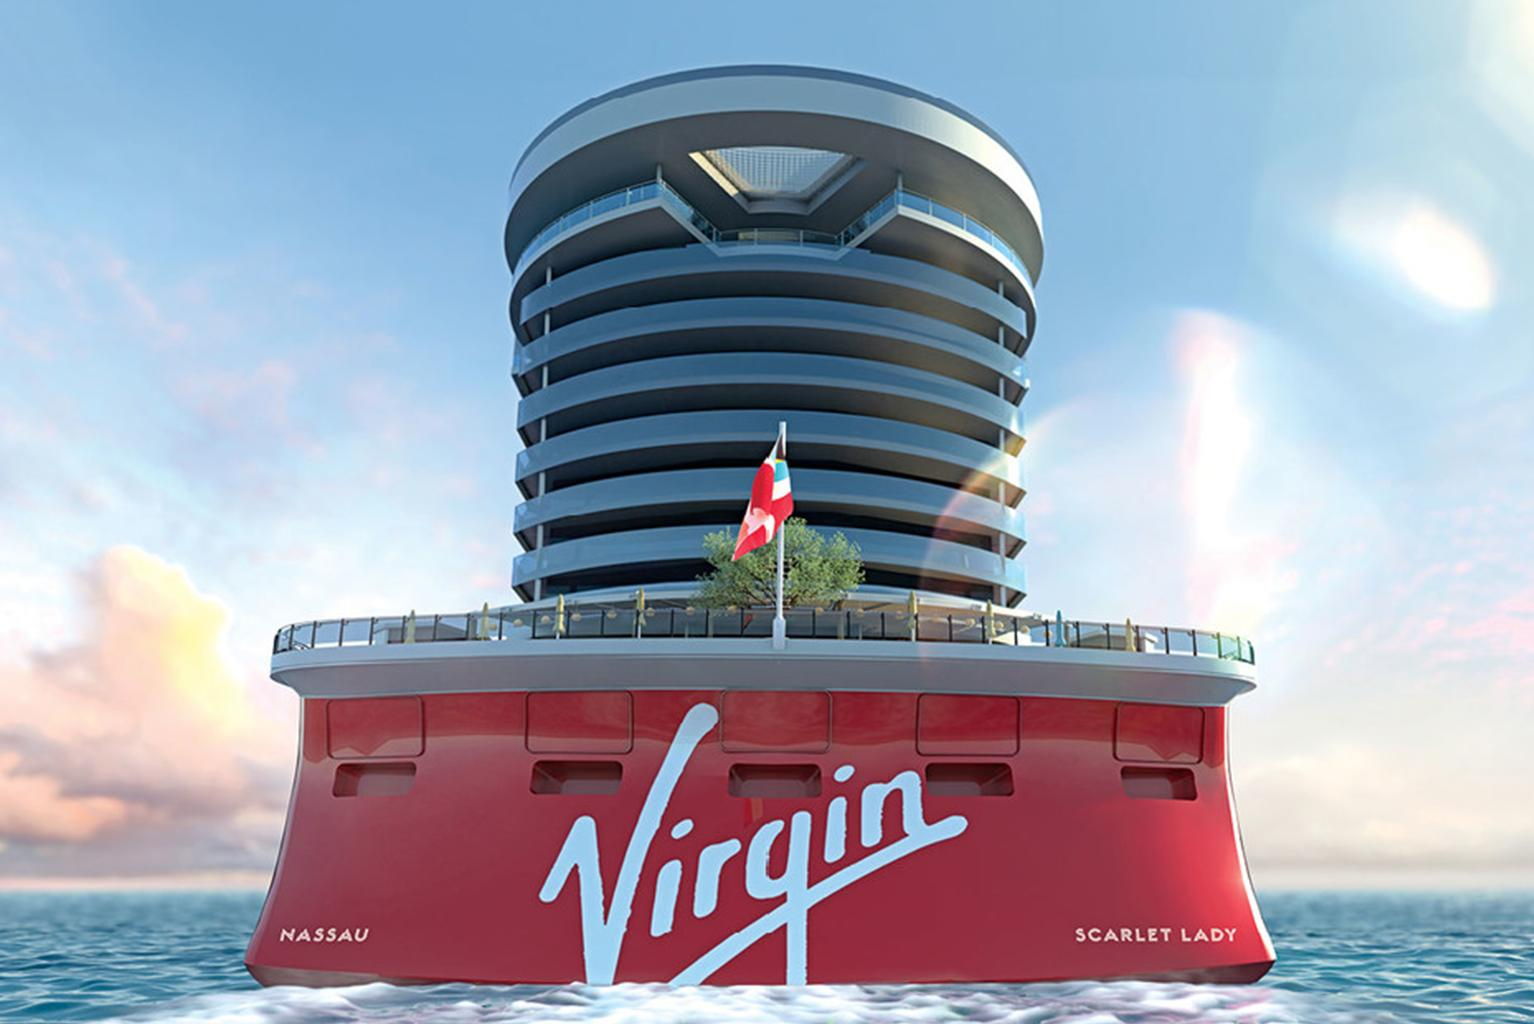 Virgin and Emerald To Bring Sustainability to the Seas